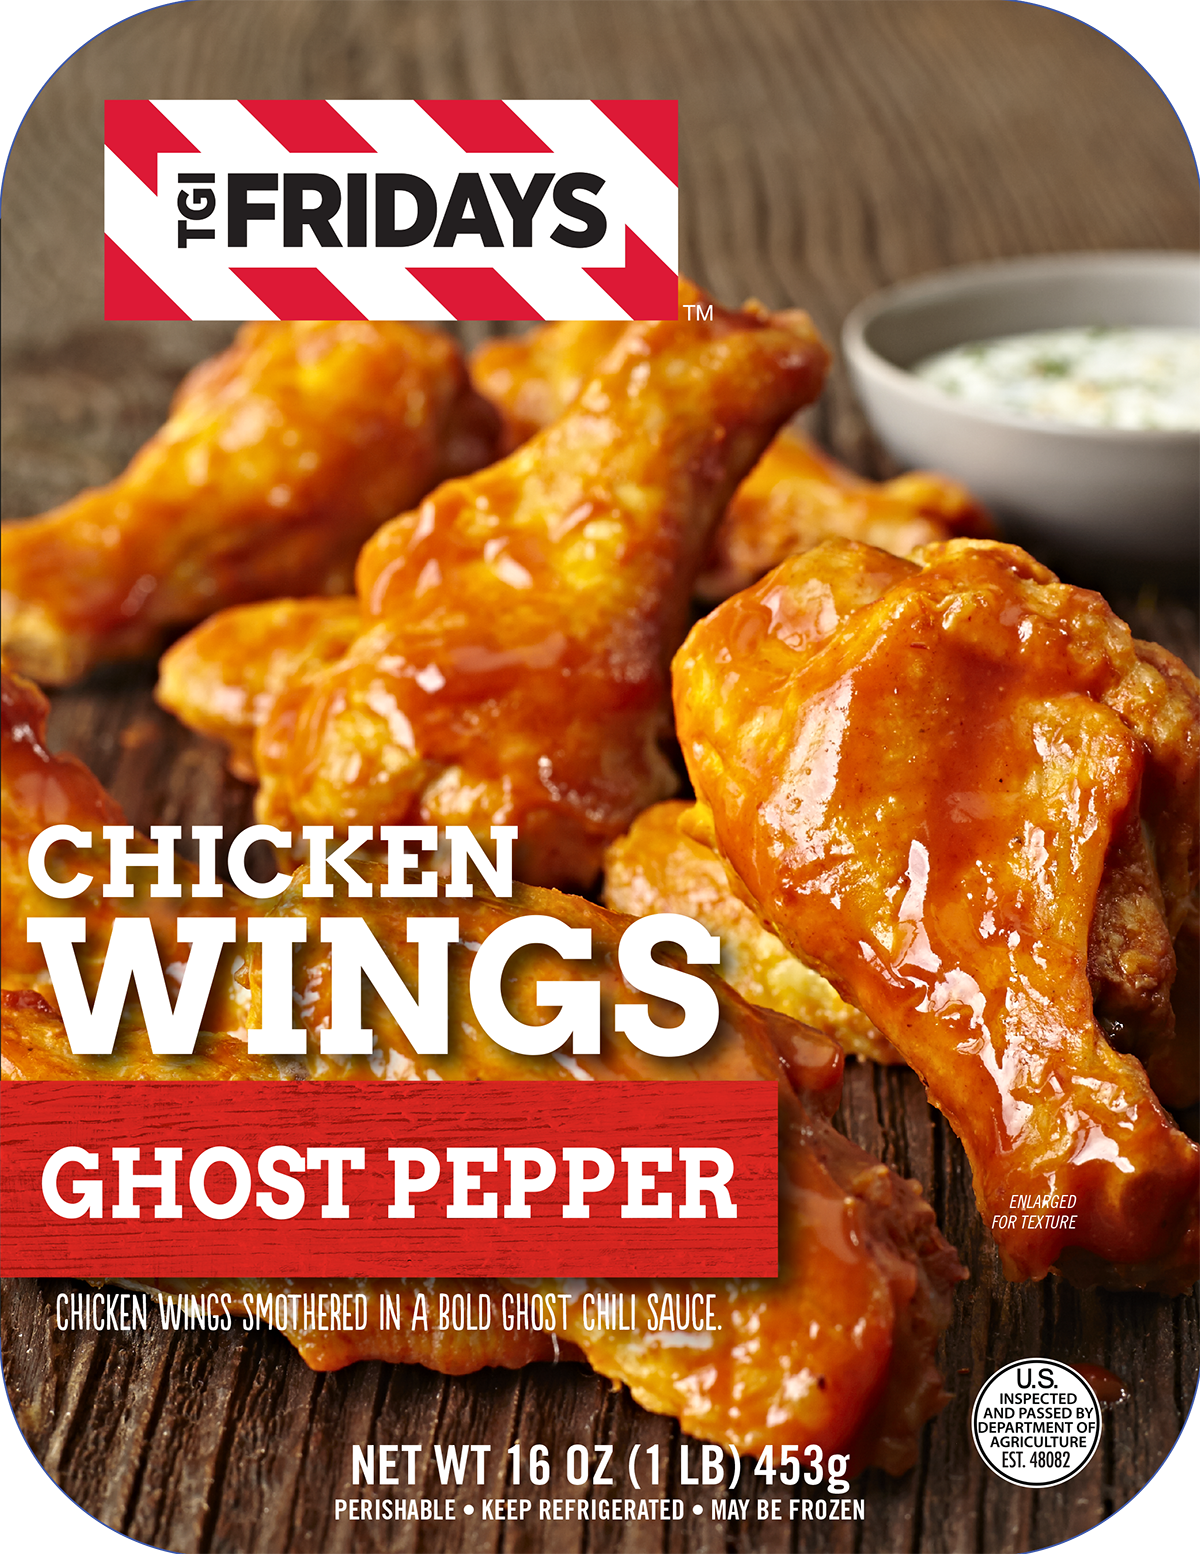 TGIF WINGS GHOST PEPPER.png